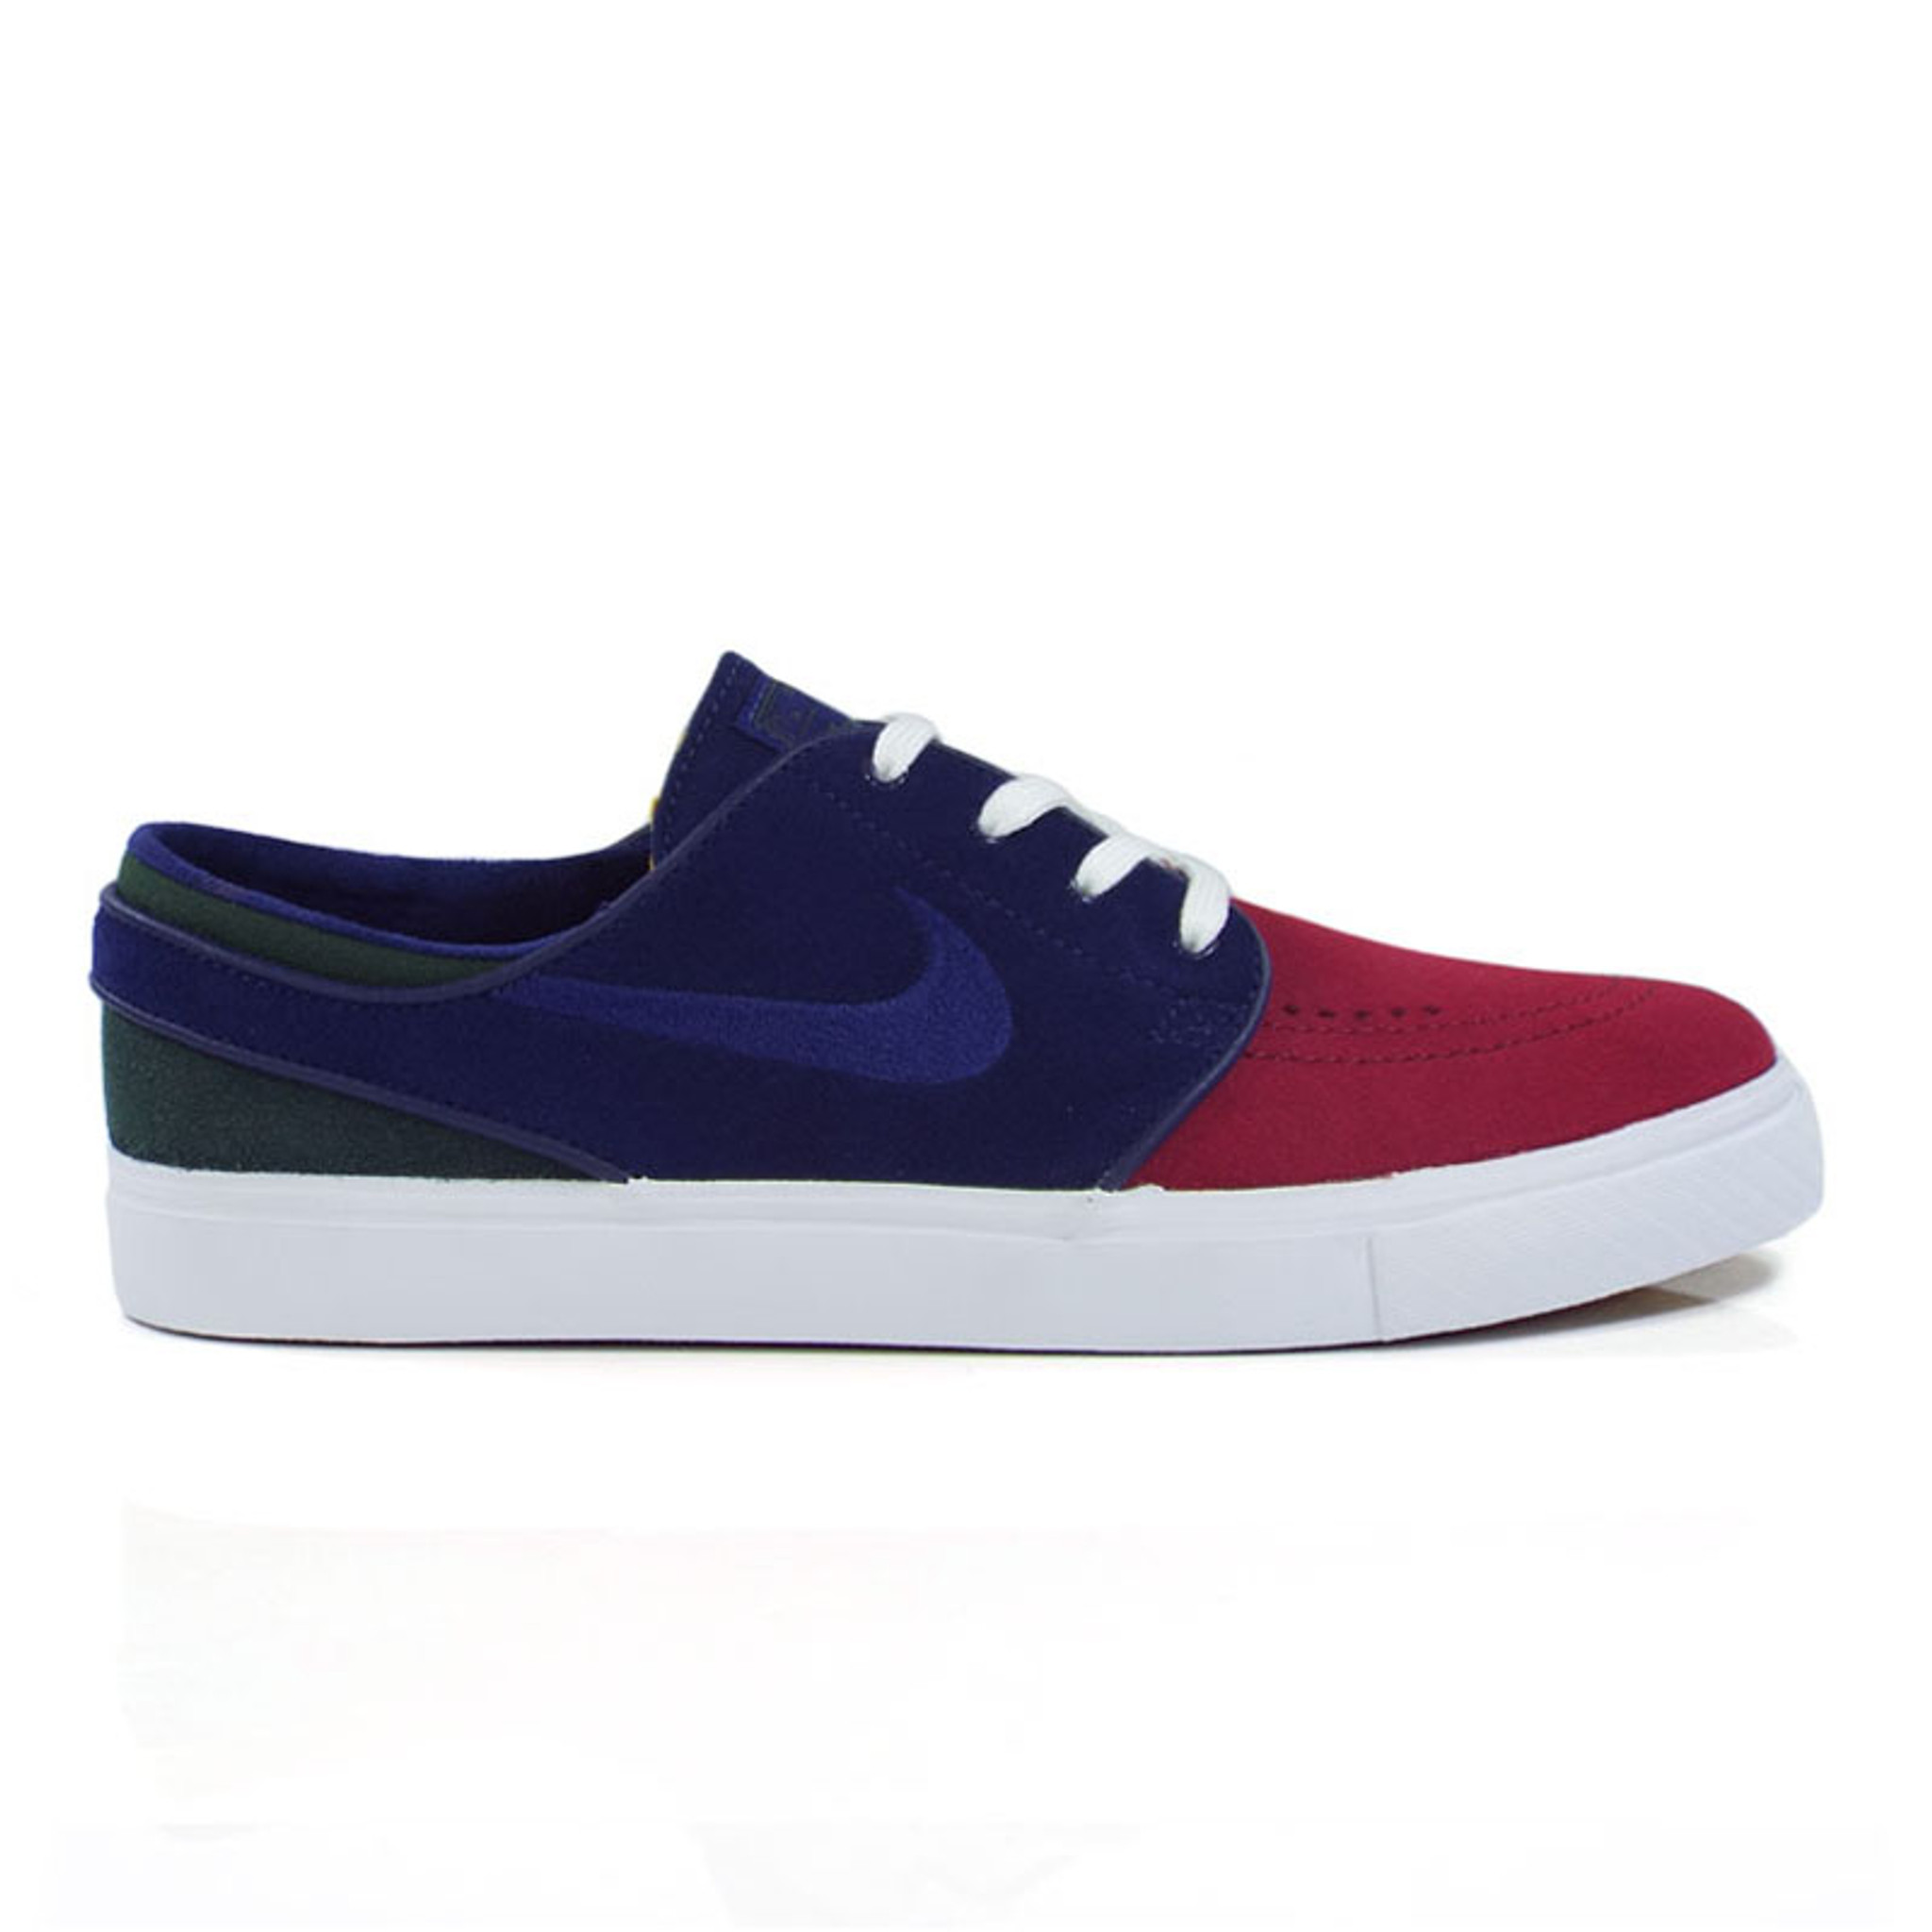 texto Predicar Peregrinación  Nike SB Zoom Stefan Janoski Shoes - (Yacht Club) Red Crush/Blue Void-White-Midnight  Green - Detroit City Skateboards Co.